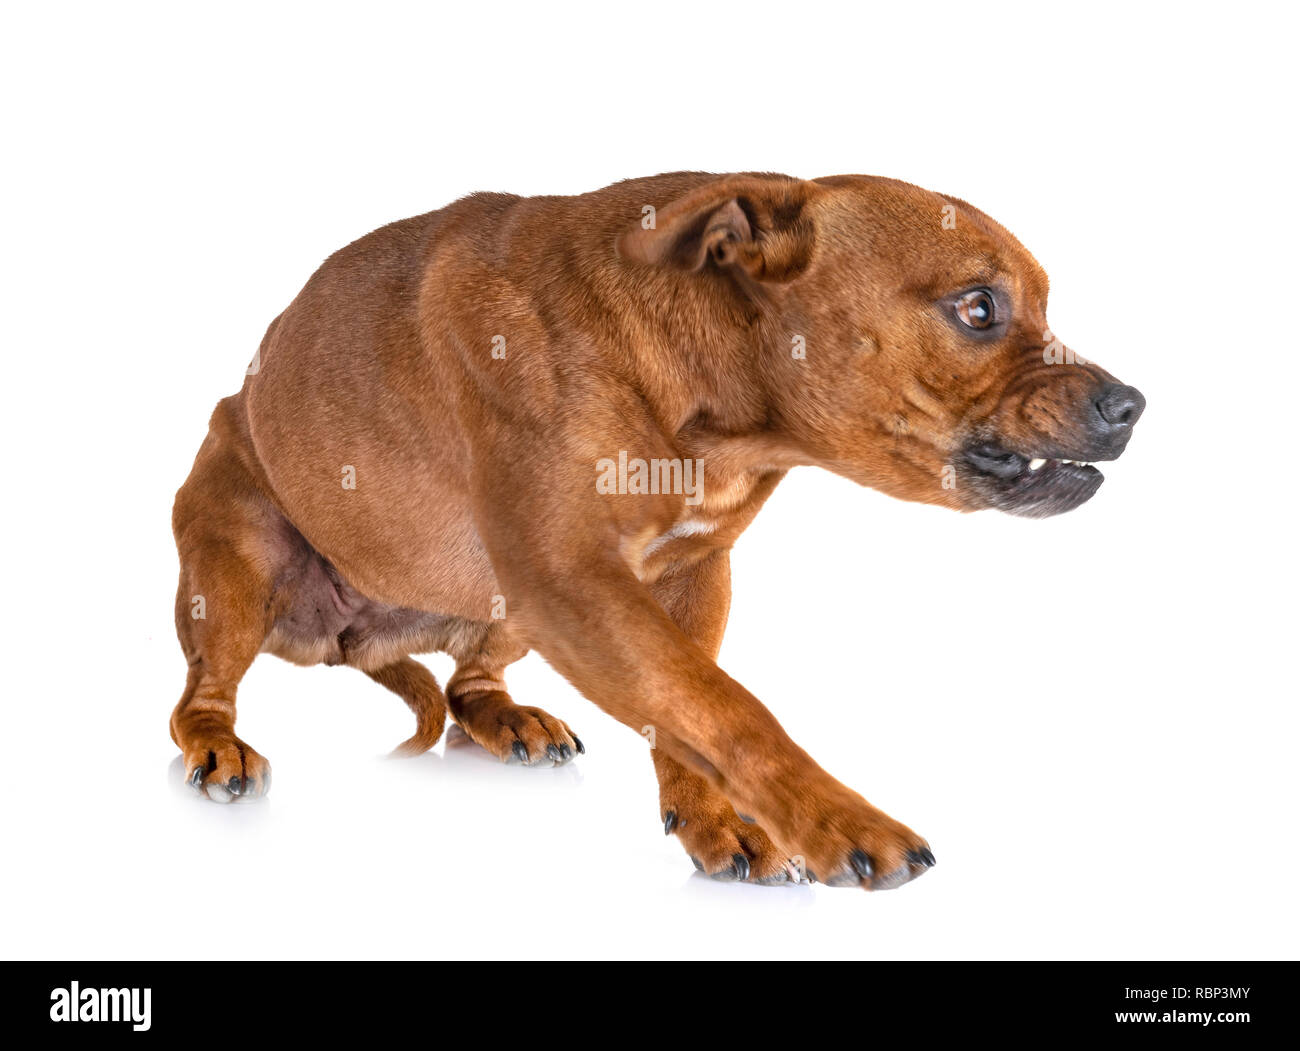 staffordshire bull terrier in front of white background - Stock Image